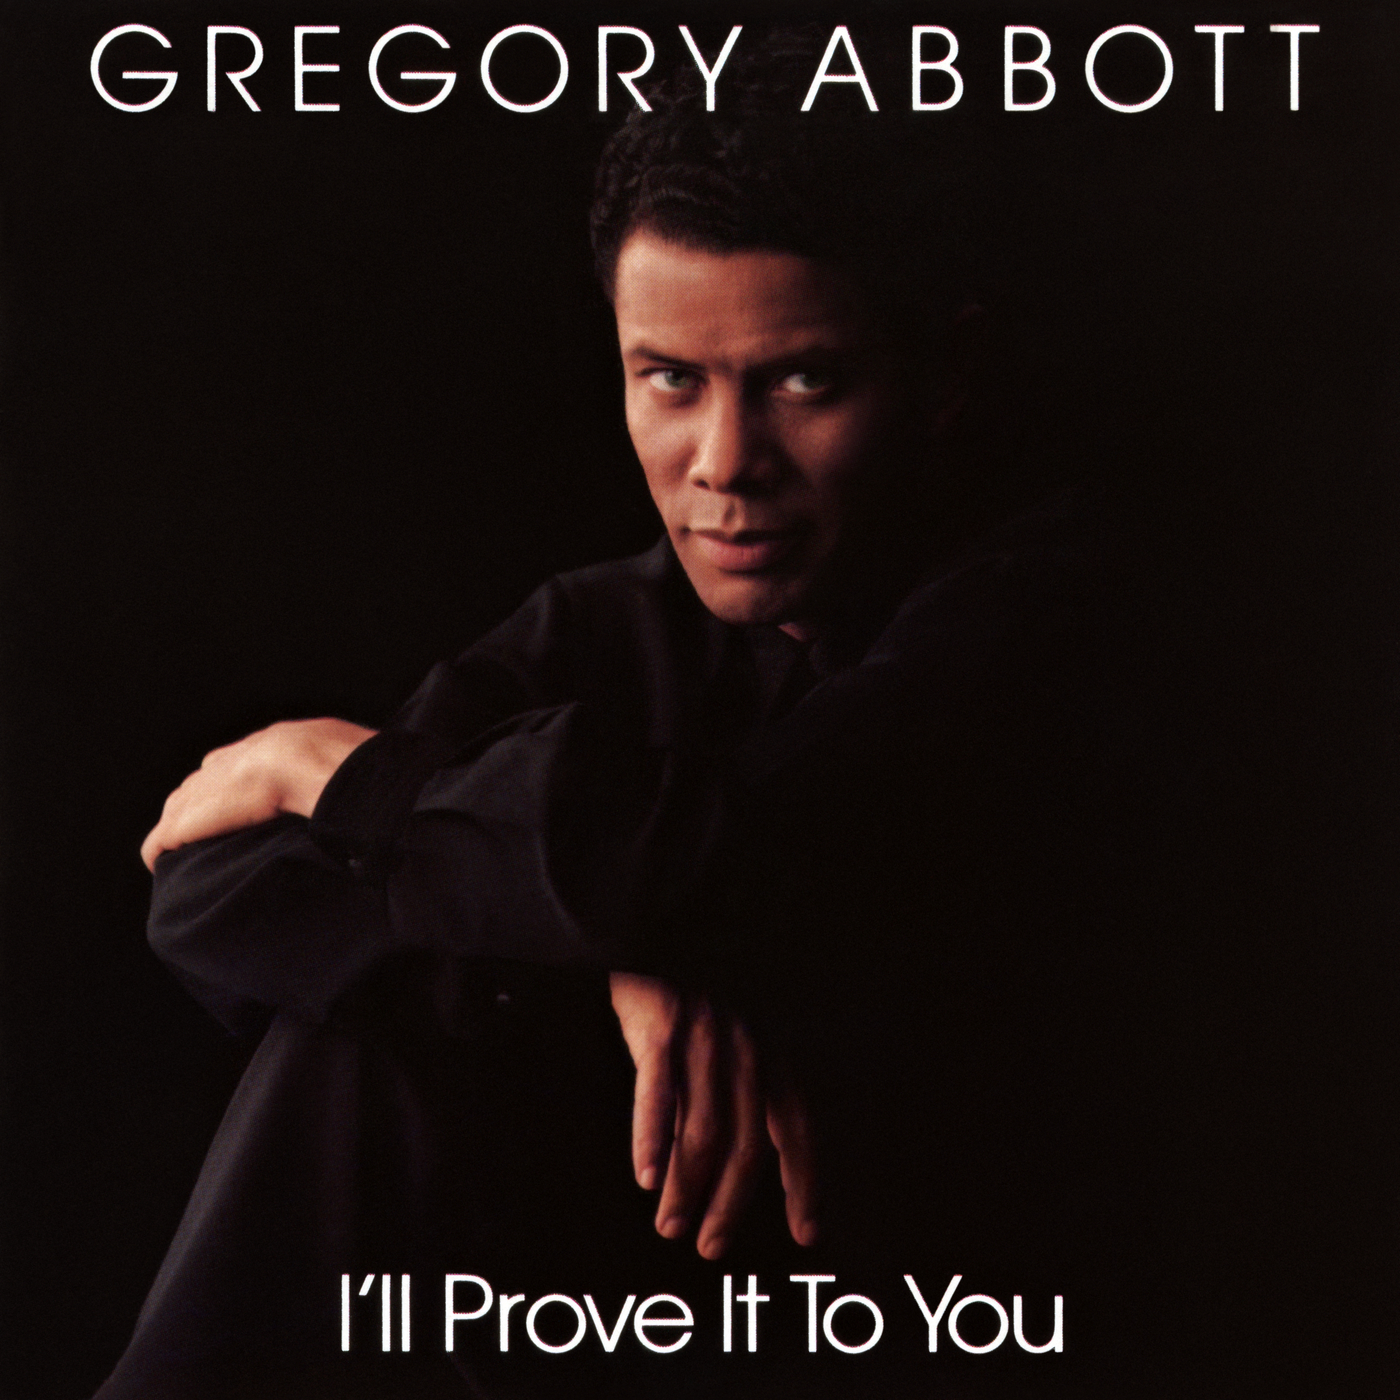 I'll Prove It to You - Gregory Abbott